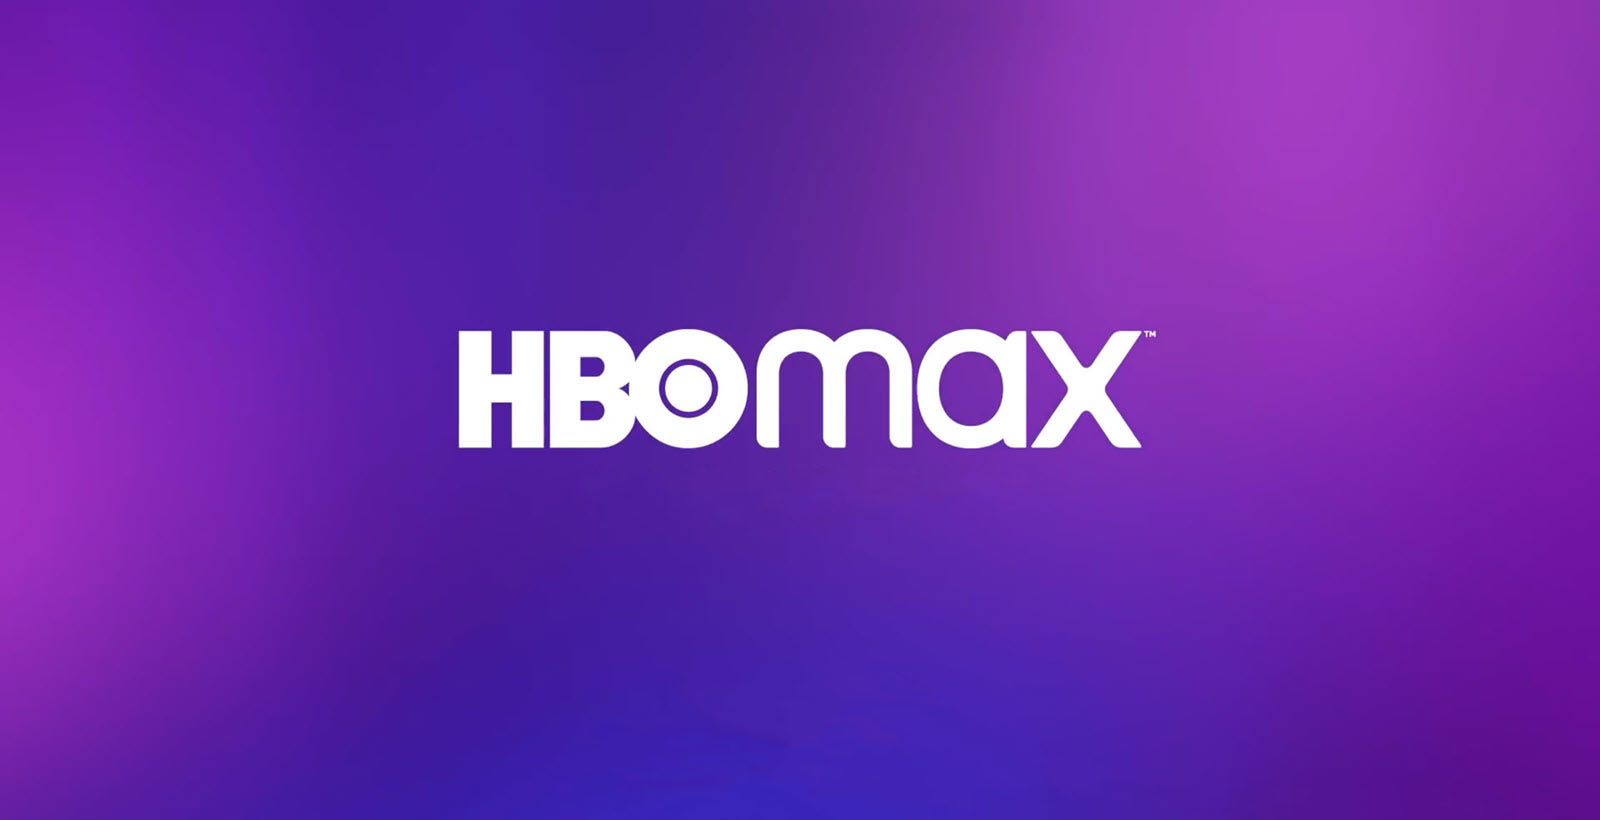 Source: HBO Max